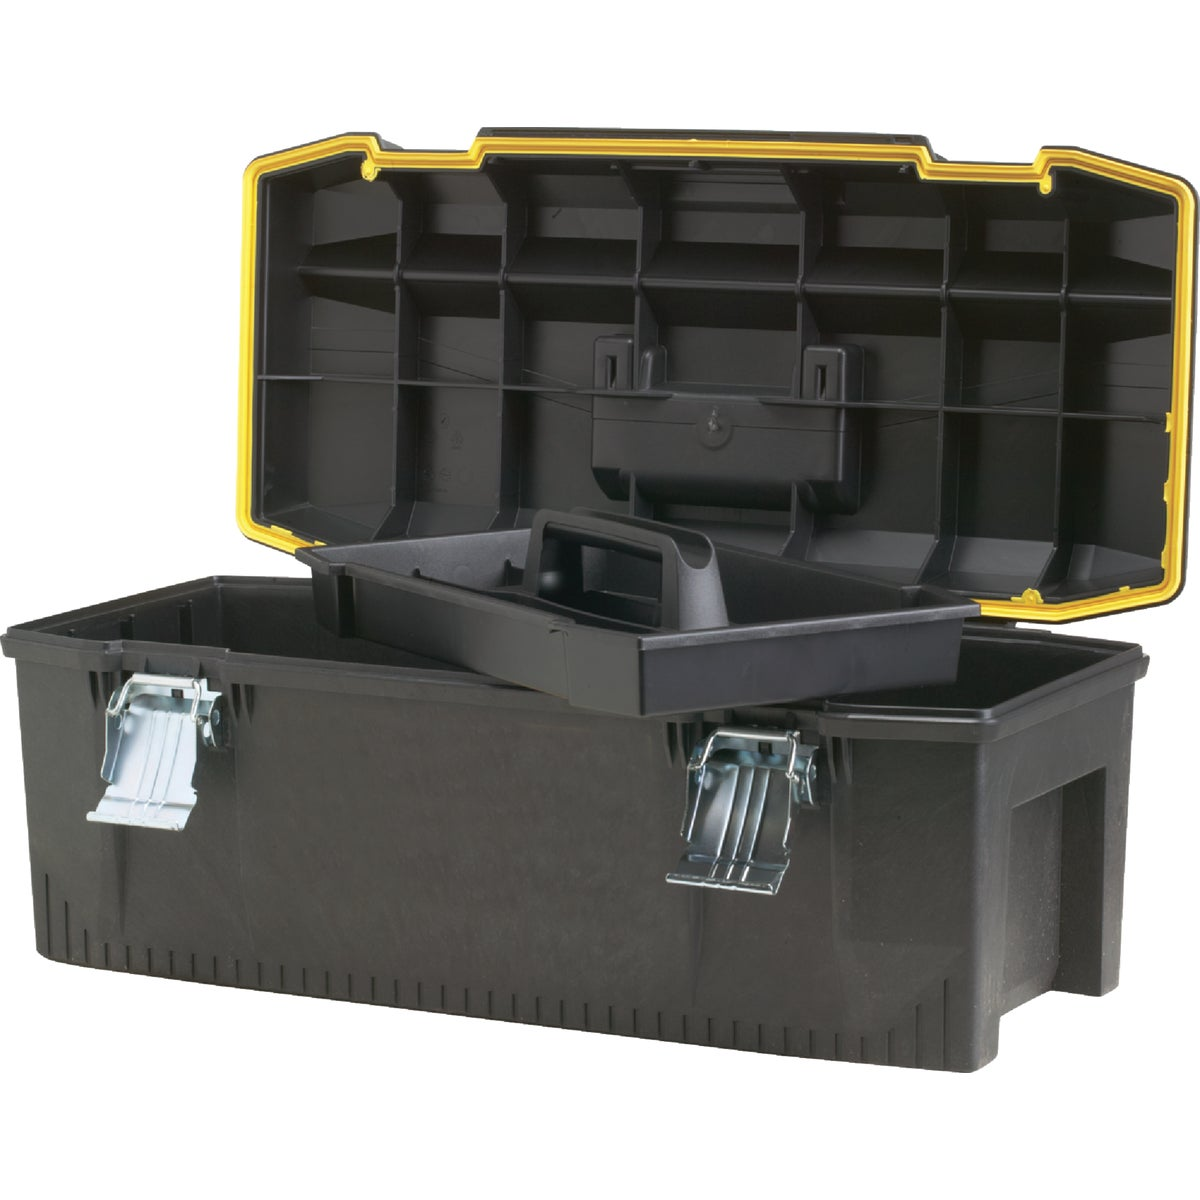 "FATMAX 28"" TOOL BOX - 028001L by Stanley Tools"